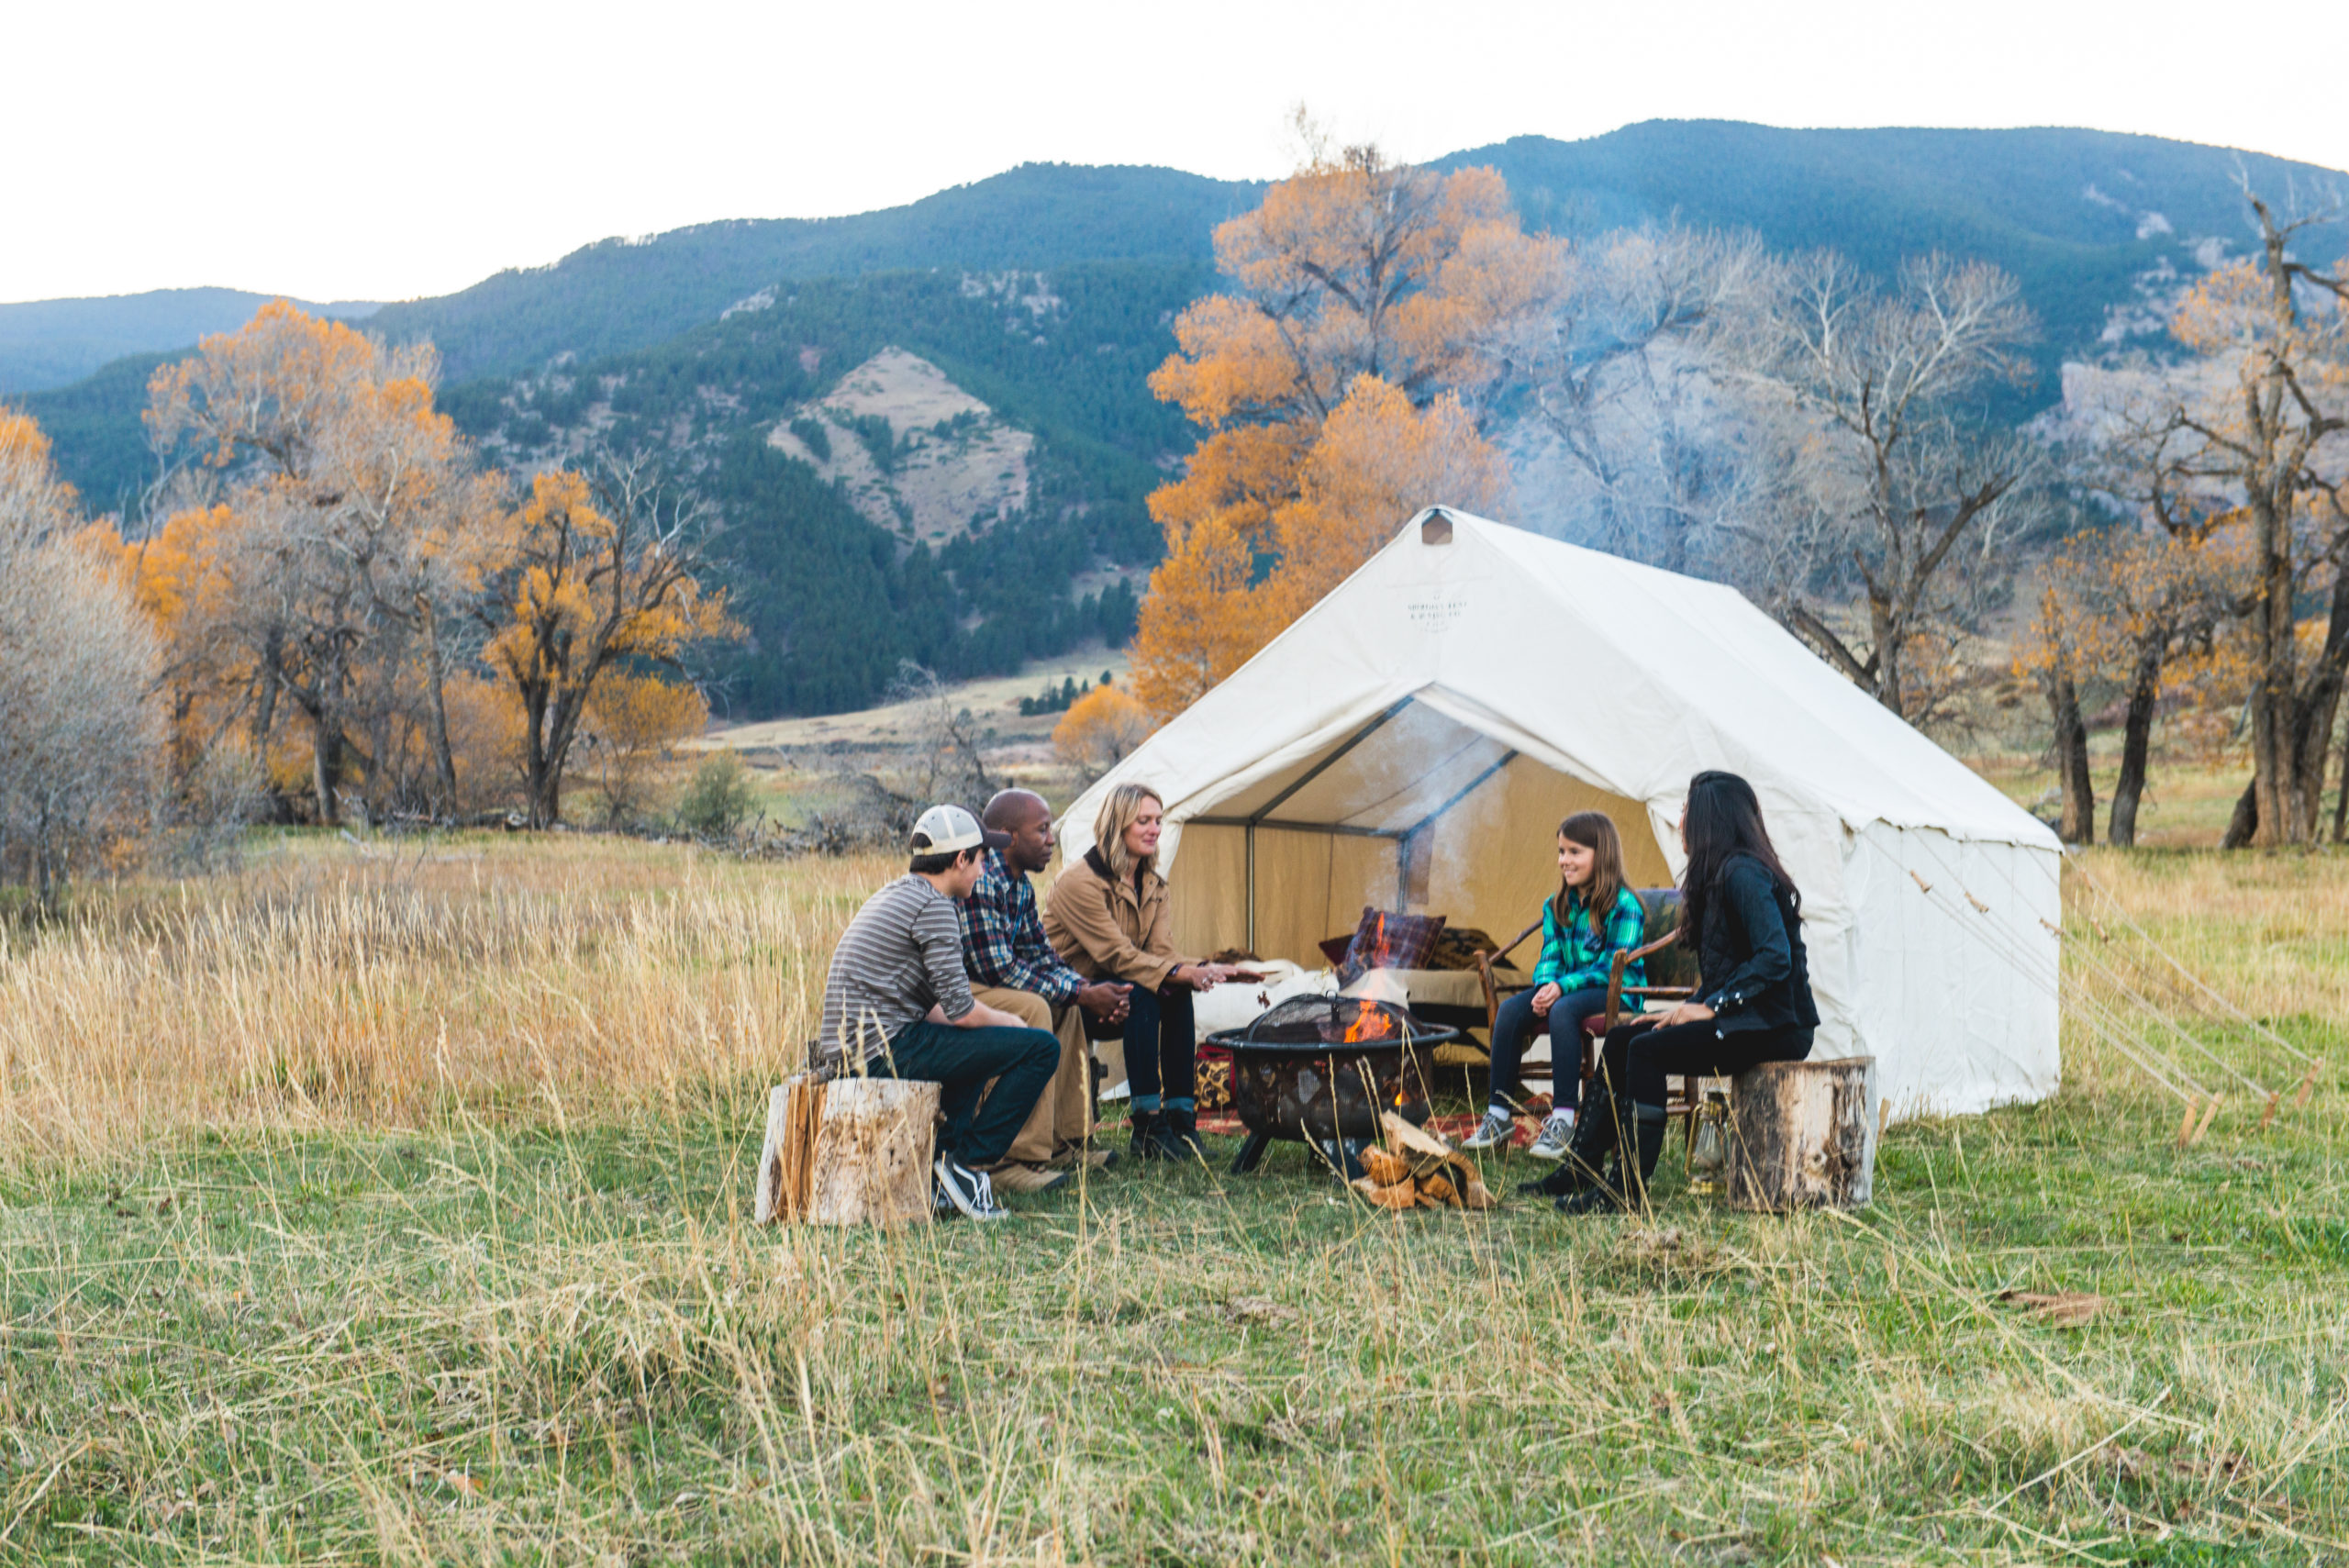 Top 5 Reasons to Go Camping with Friends and Family